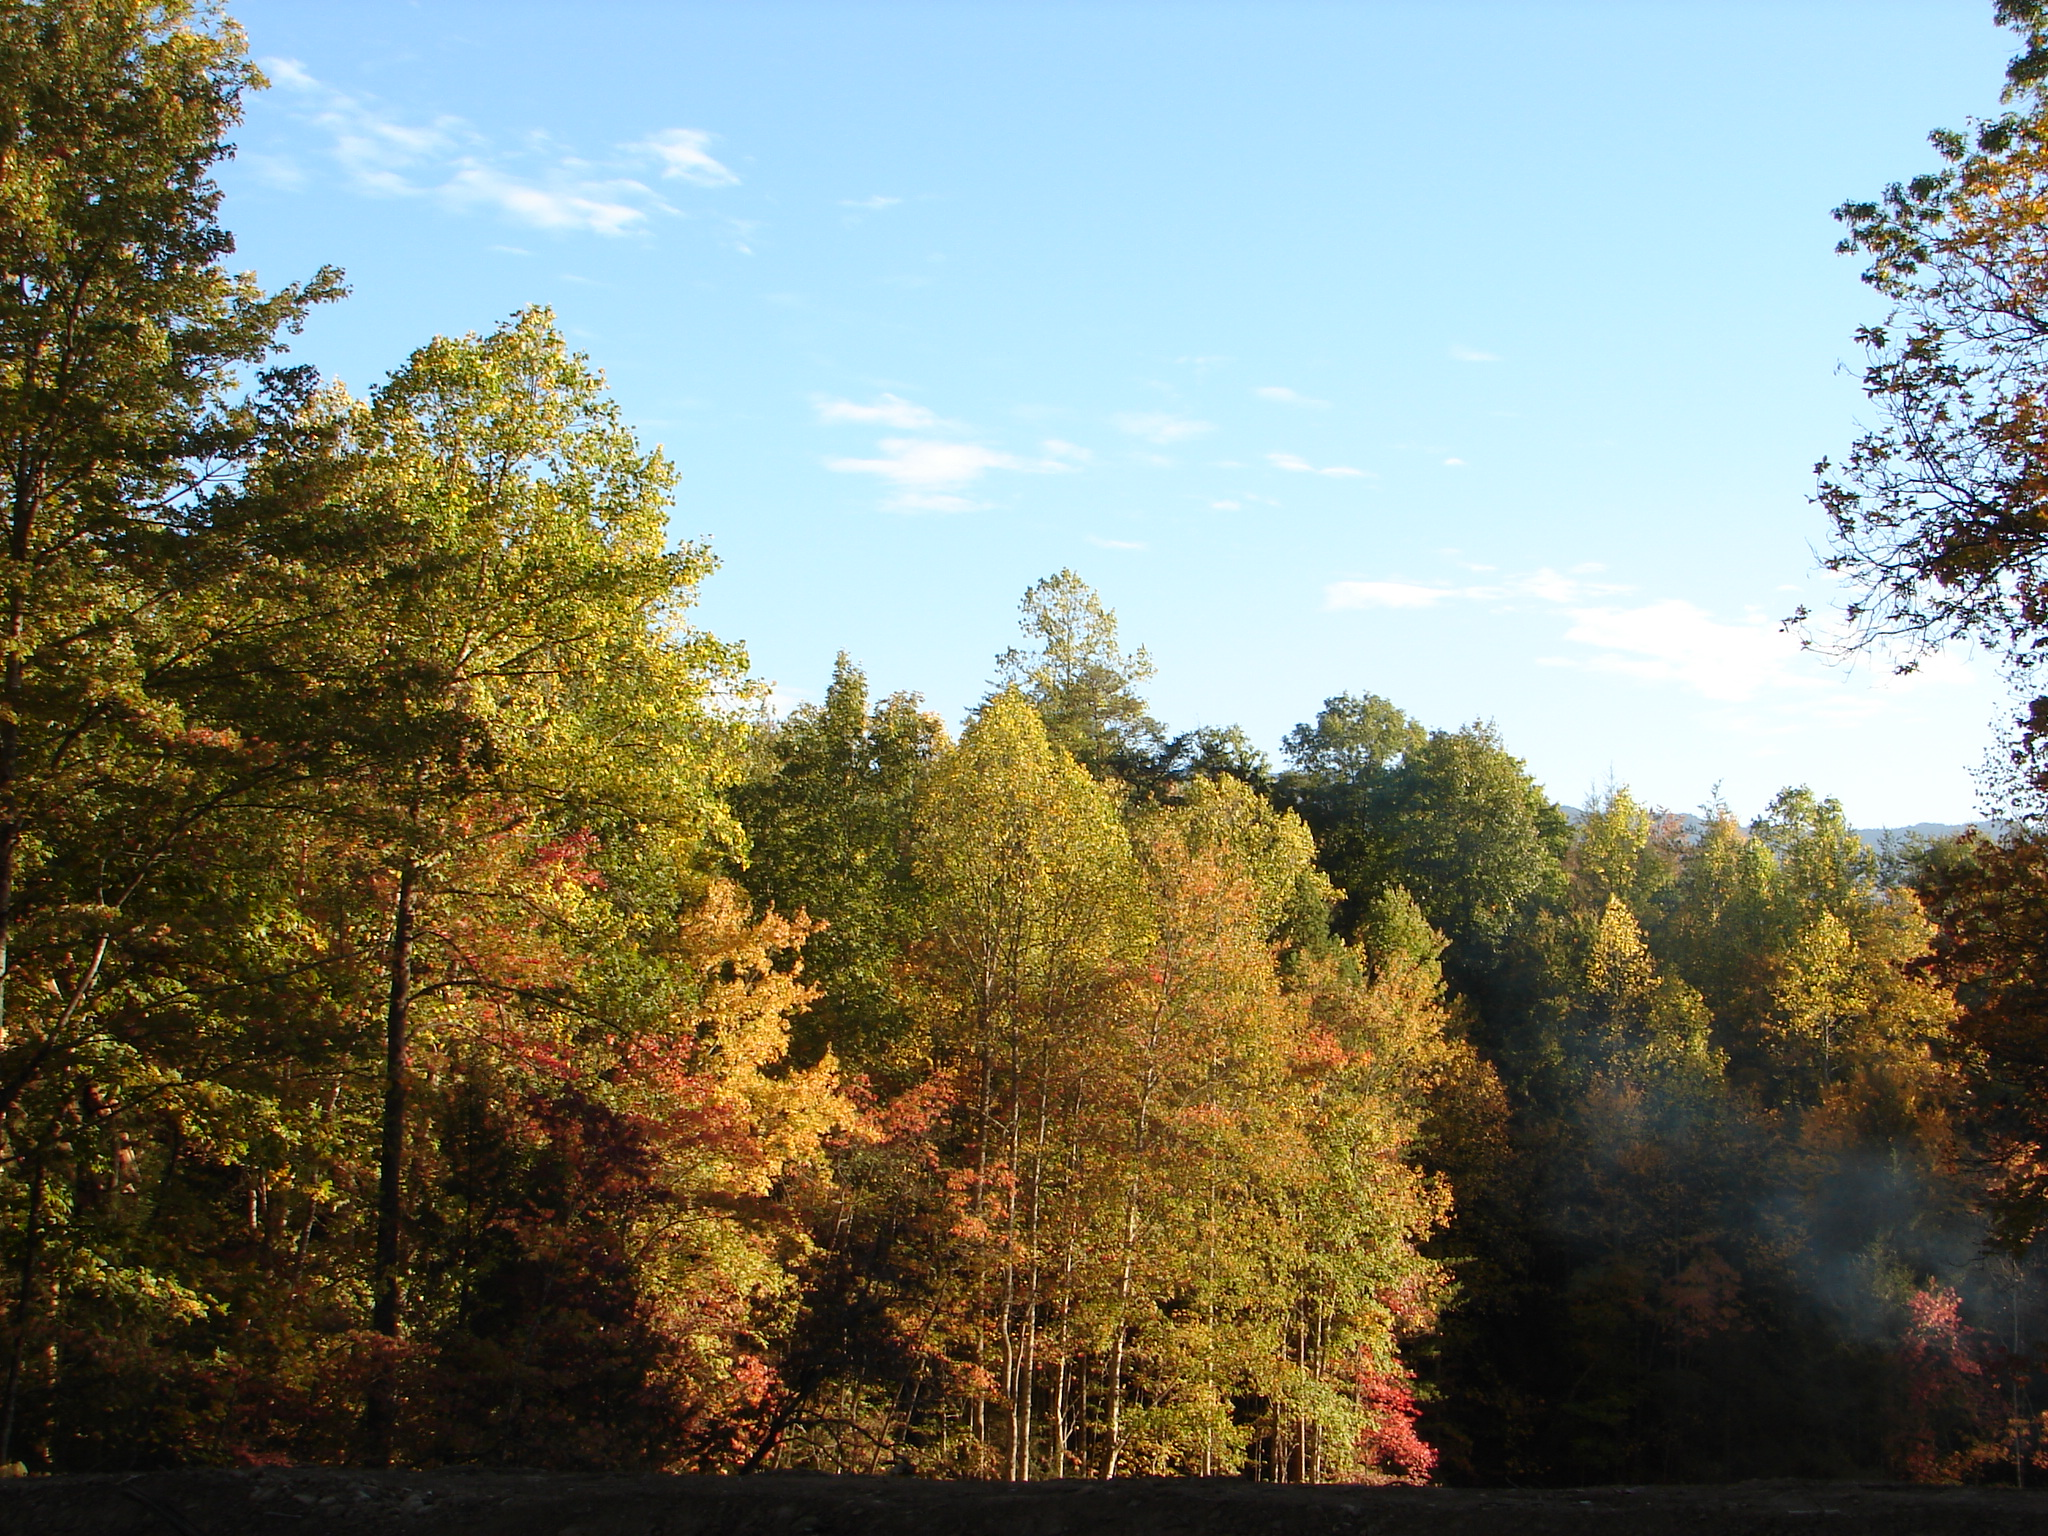 Gatlinburg Cabin Rentals and Lodges - Fall colors